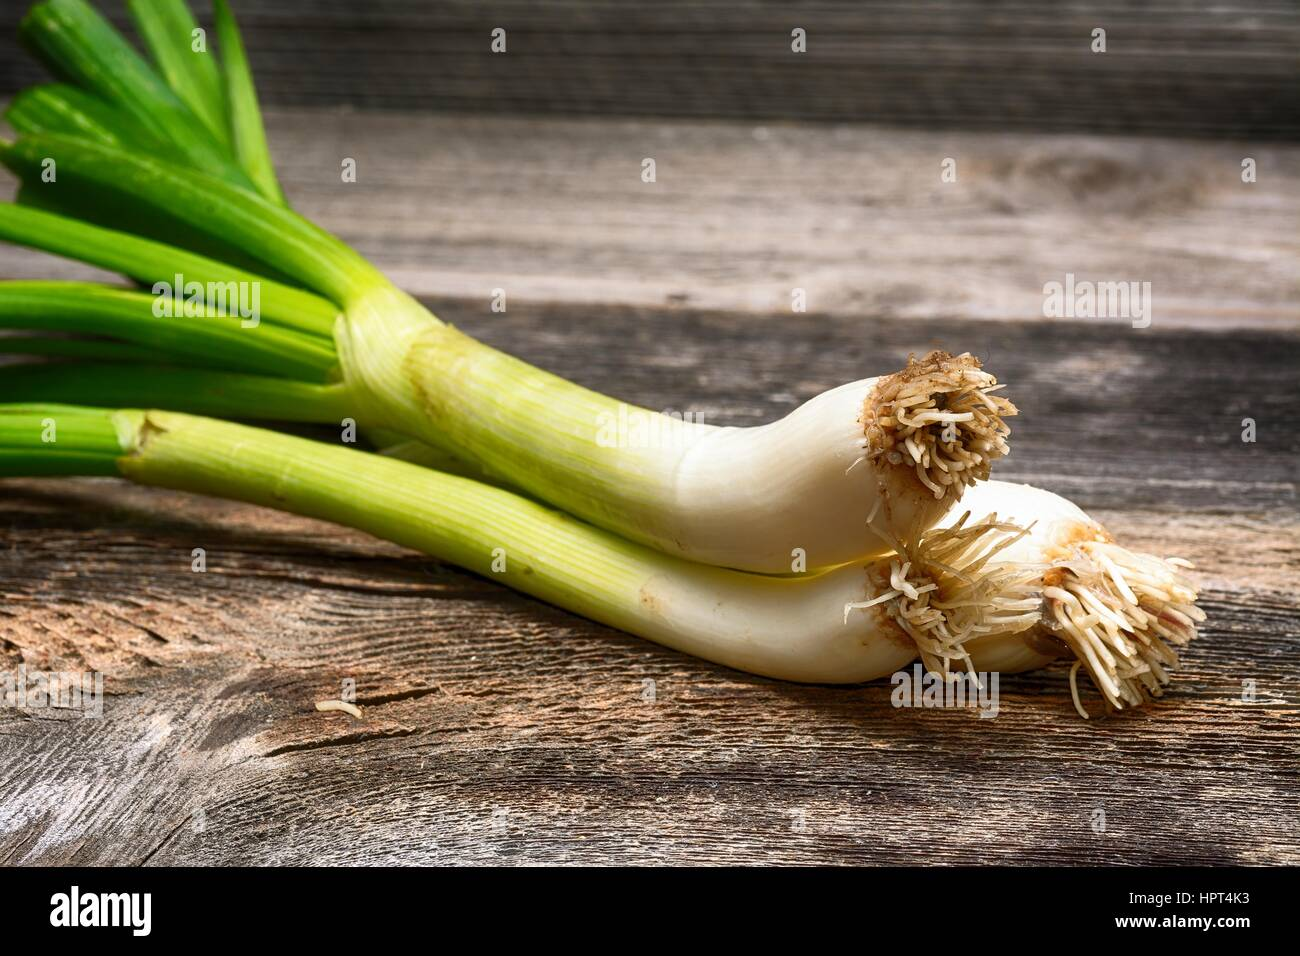 spring onions bunch - Stock Image